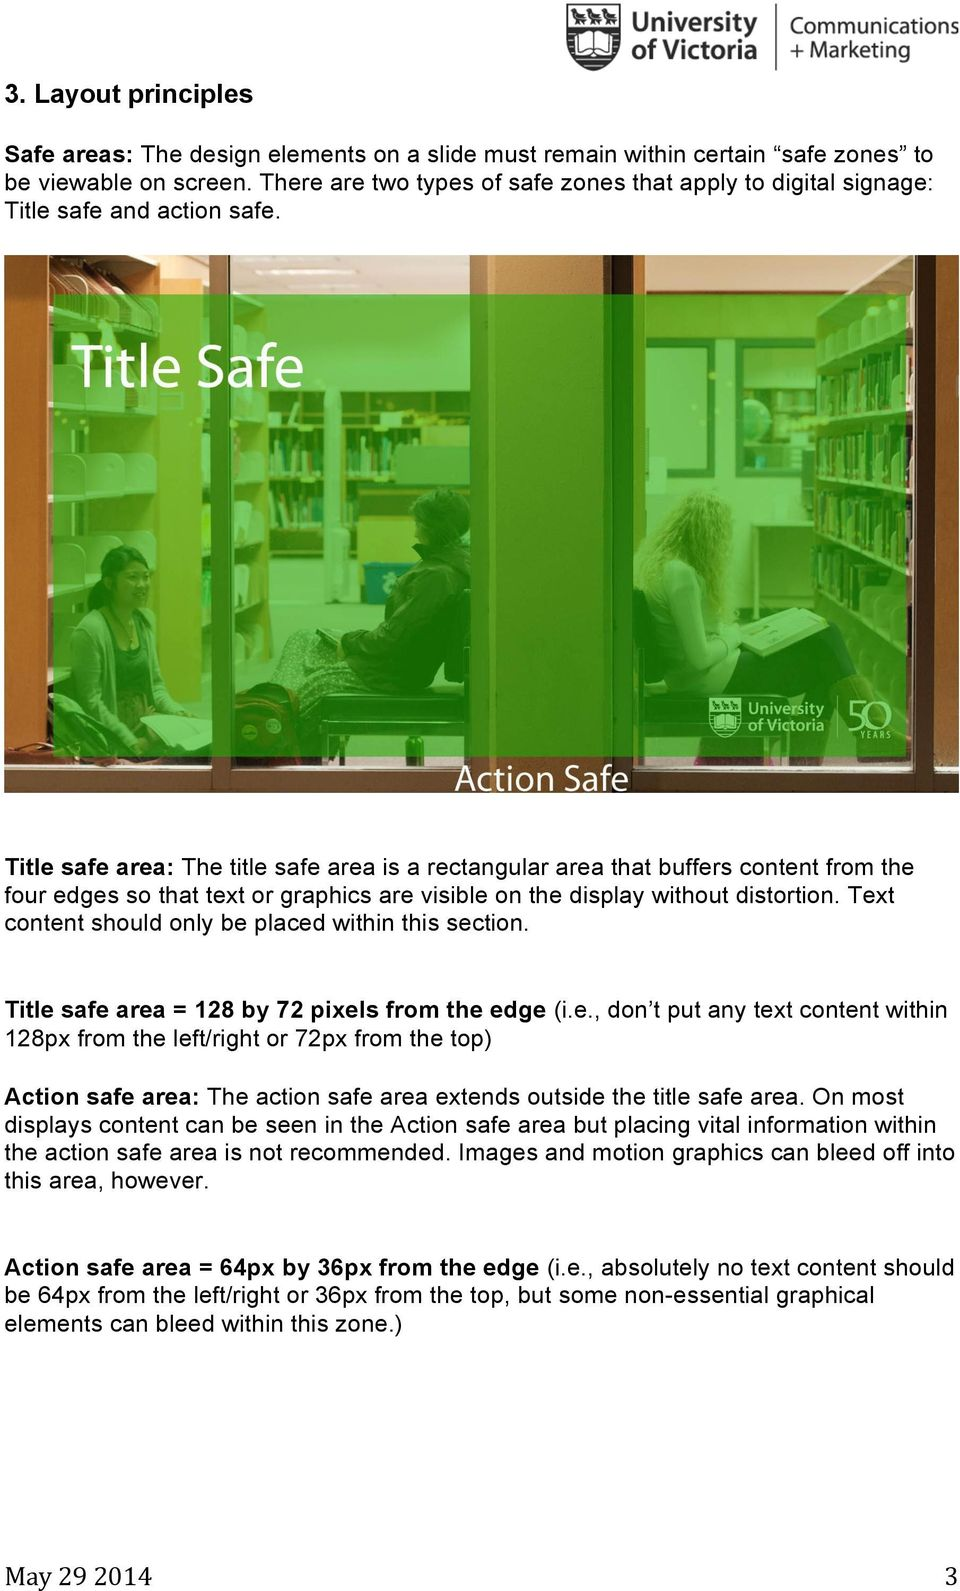 Title safe area: The title safe area is a rectangular area that buffers content from the four edges so that text or graphics are visible on the display without distortion.